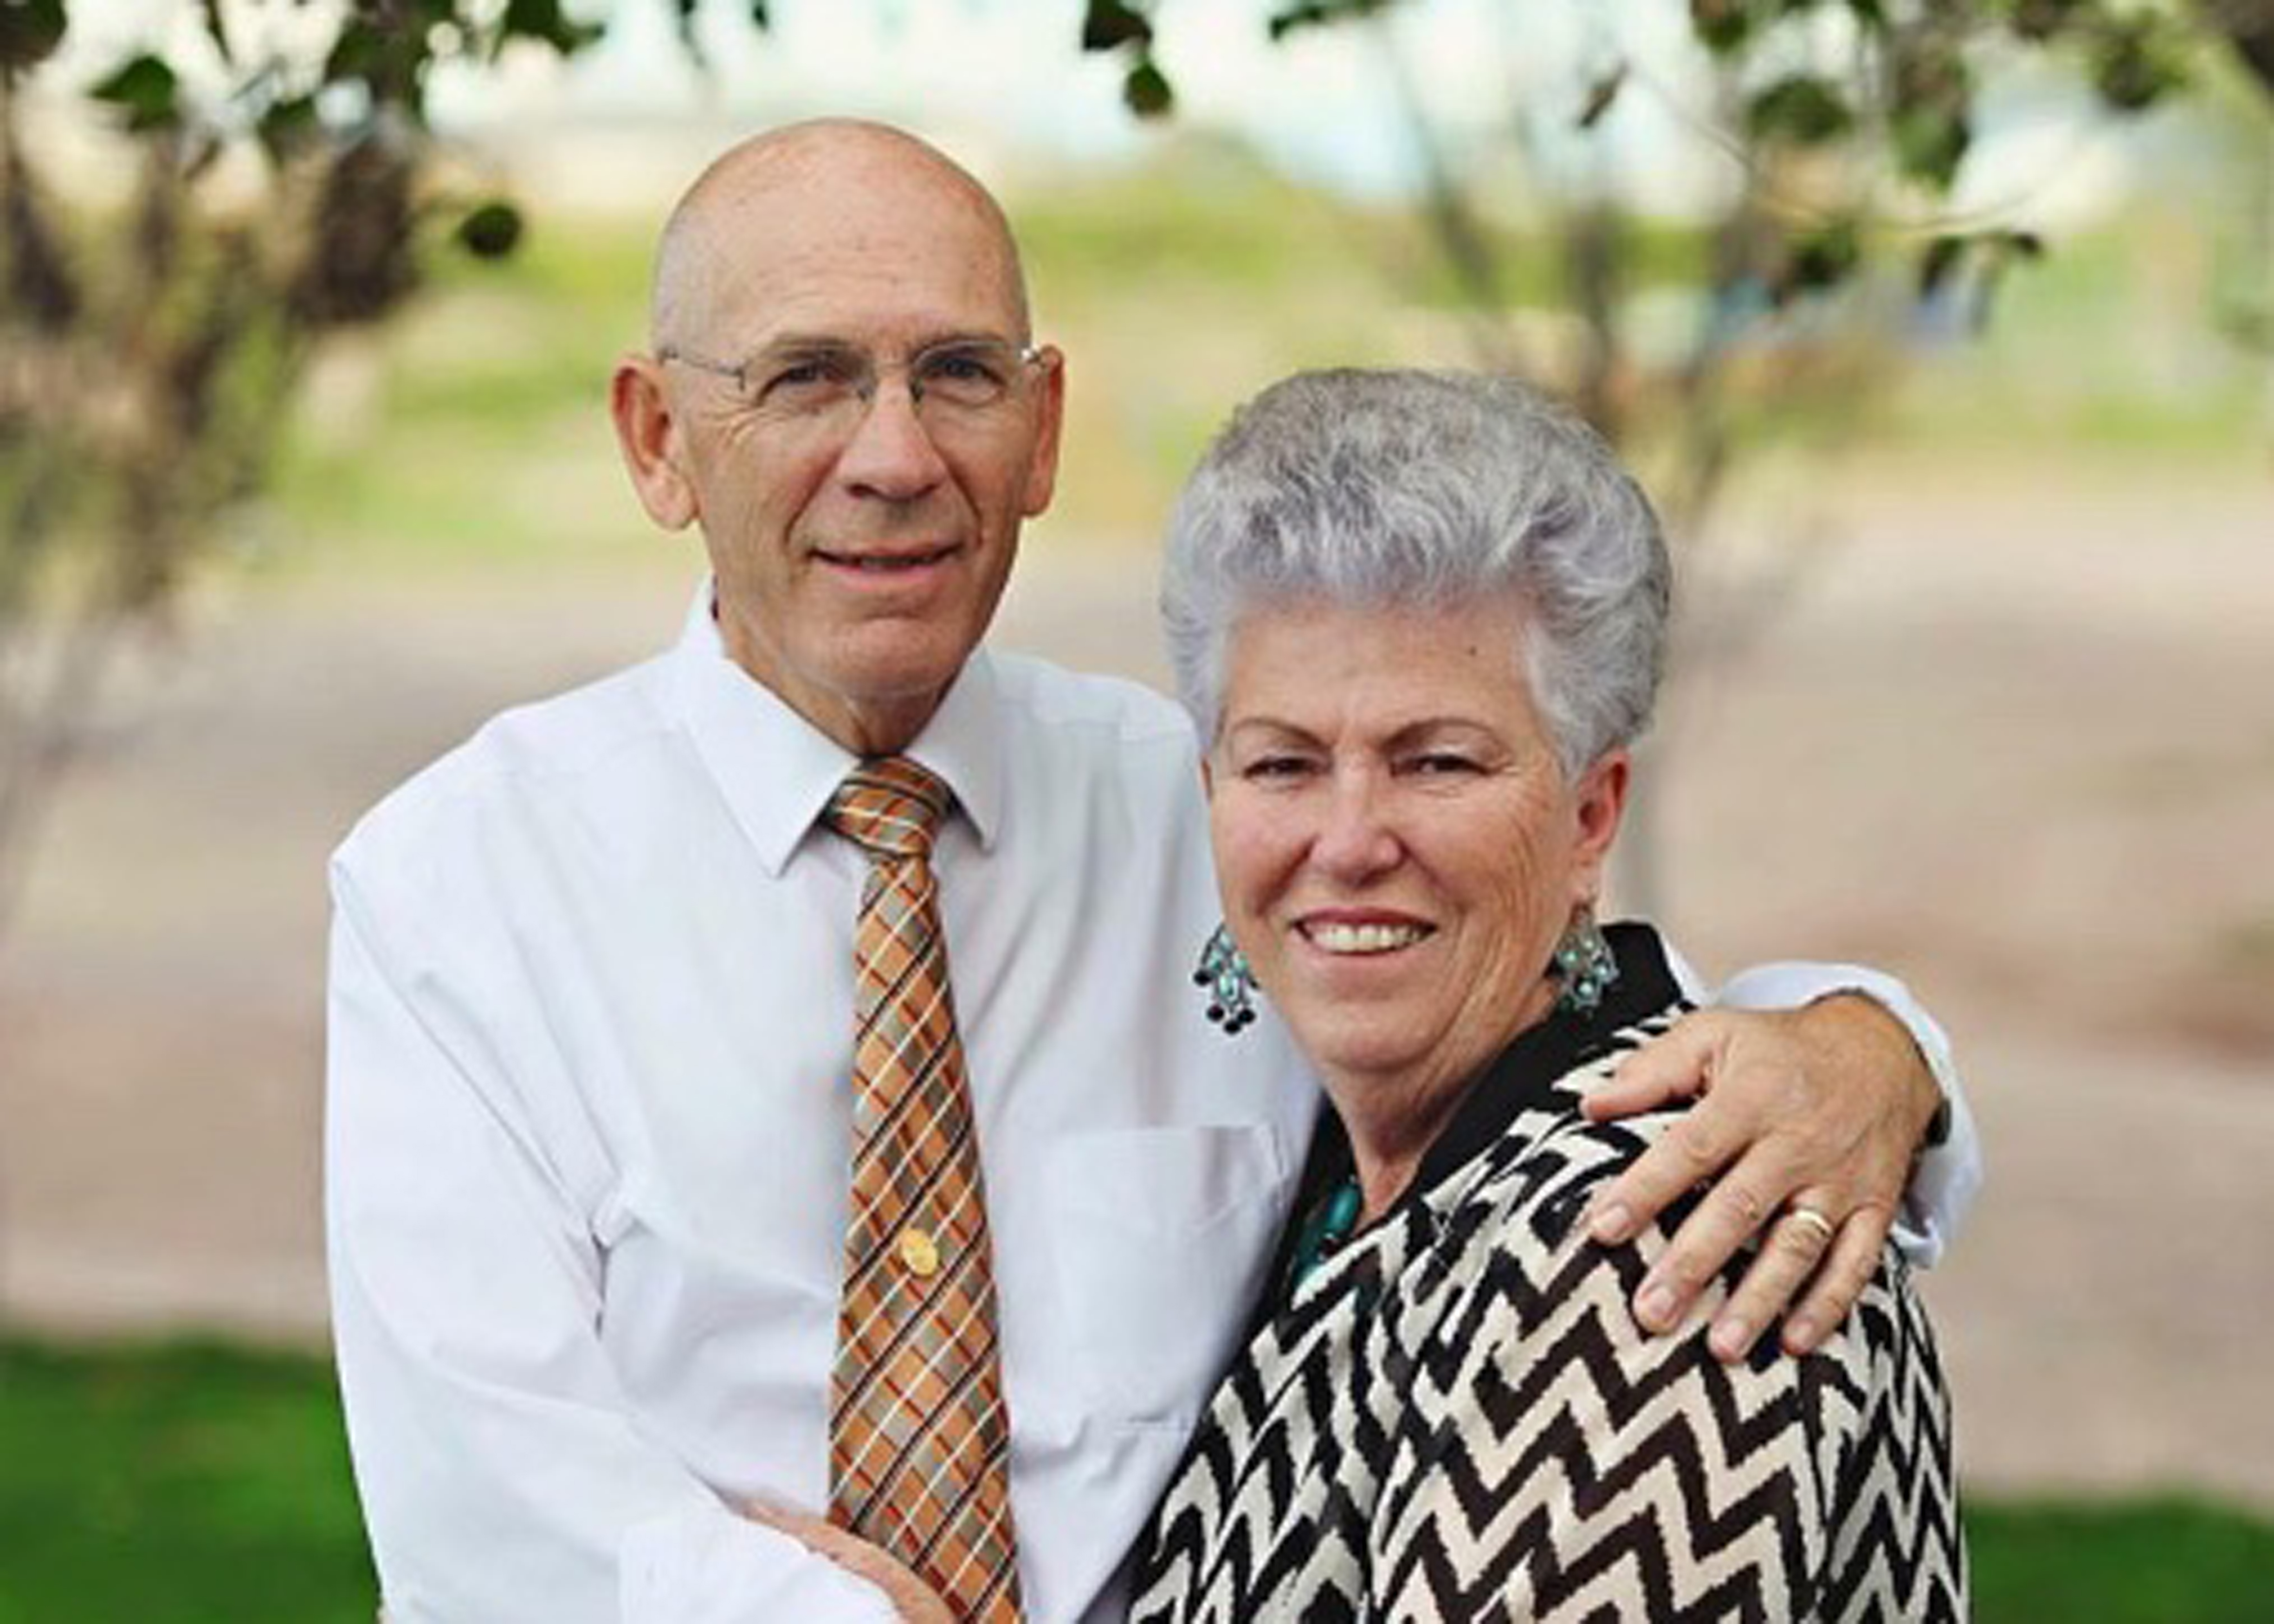 Mel J. Palmer, who worked as a high school seminary teacher and now serves in The Gila Valley Arizona Temple presidency, pictured with his wife, Adeline Palmer.